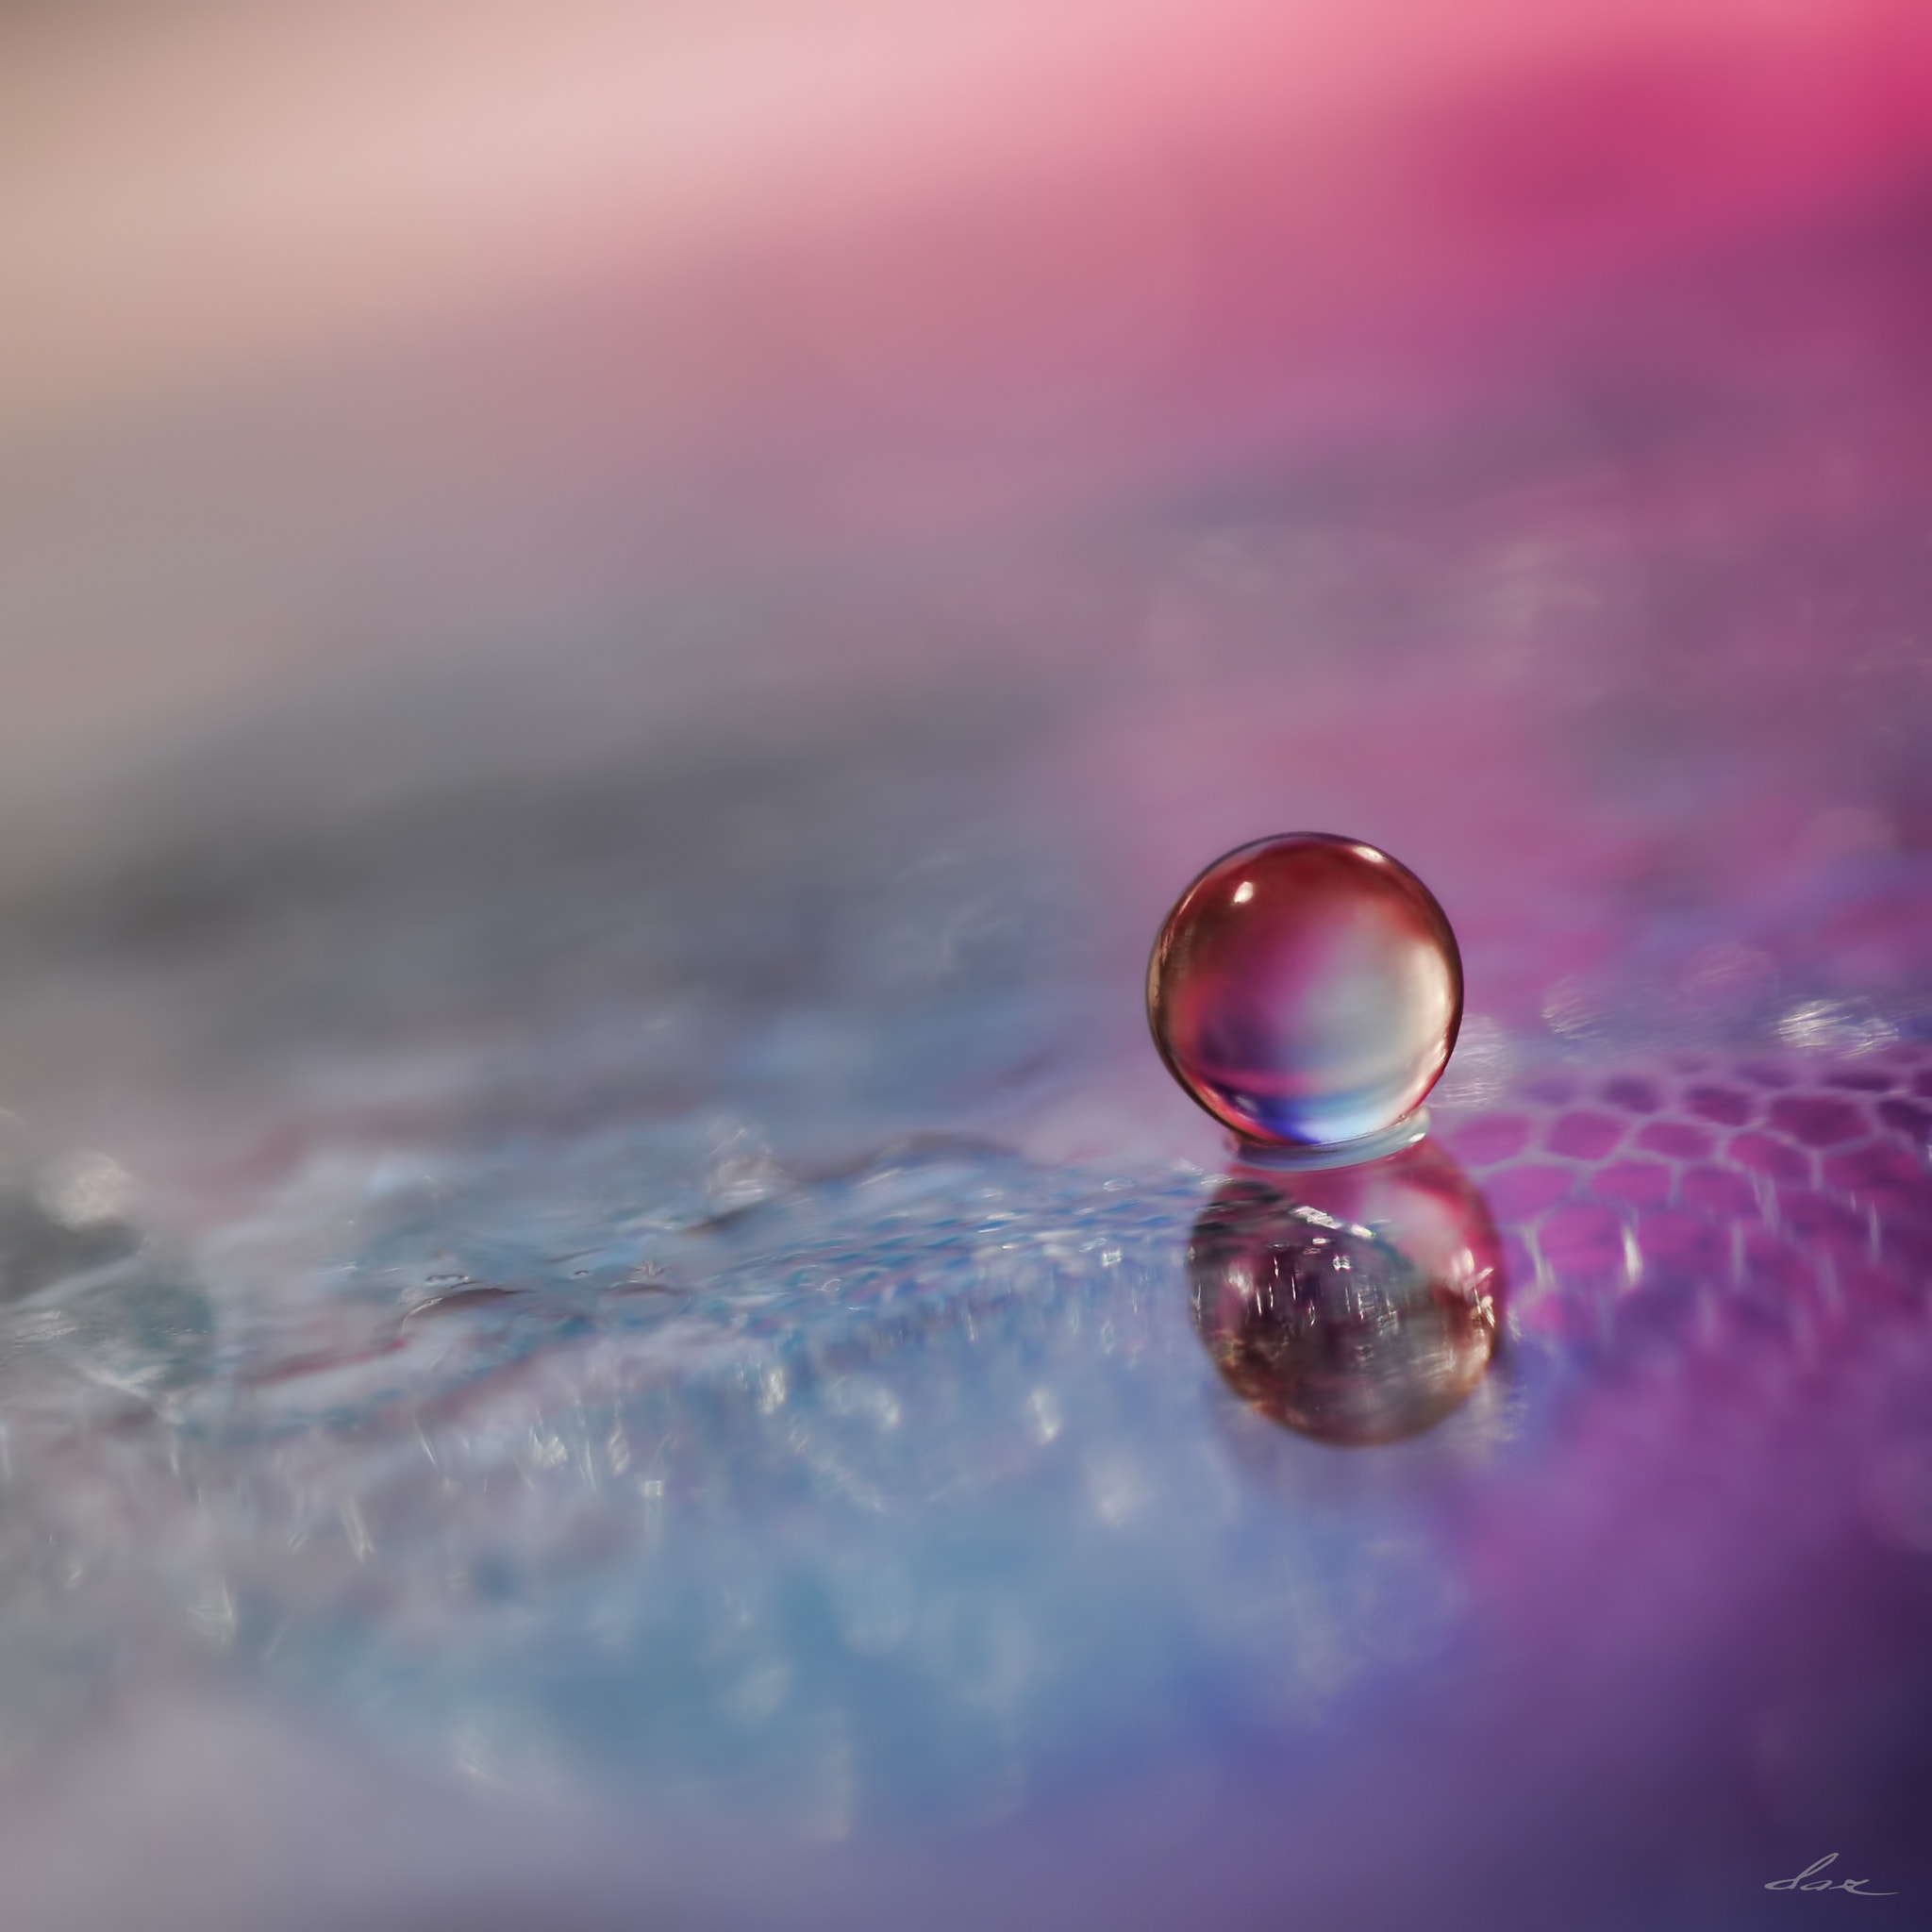 Photograph Delicate by Dax  on 500px